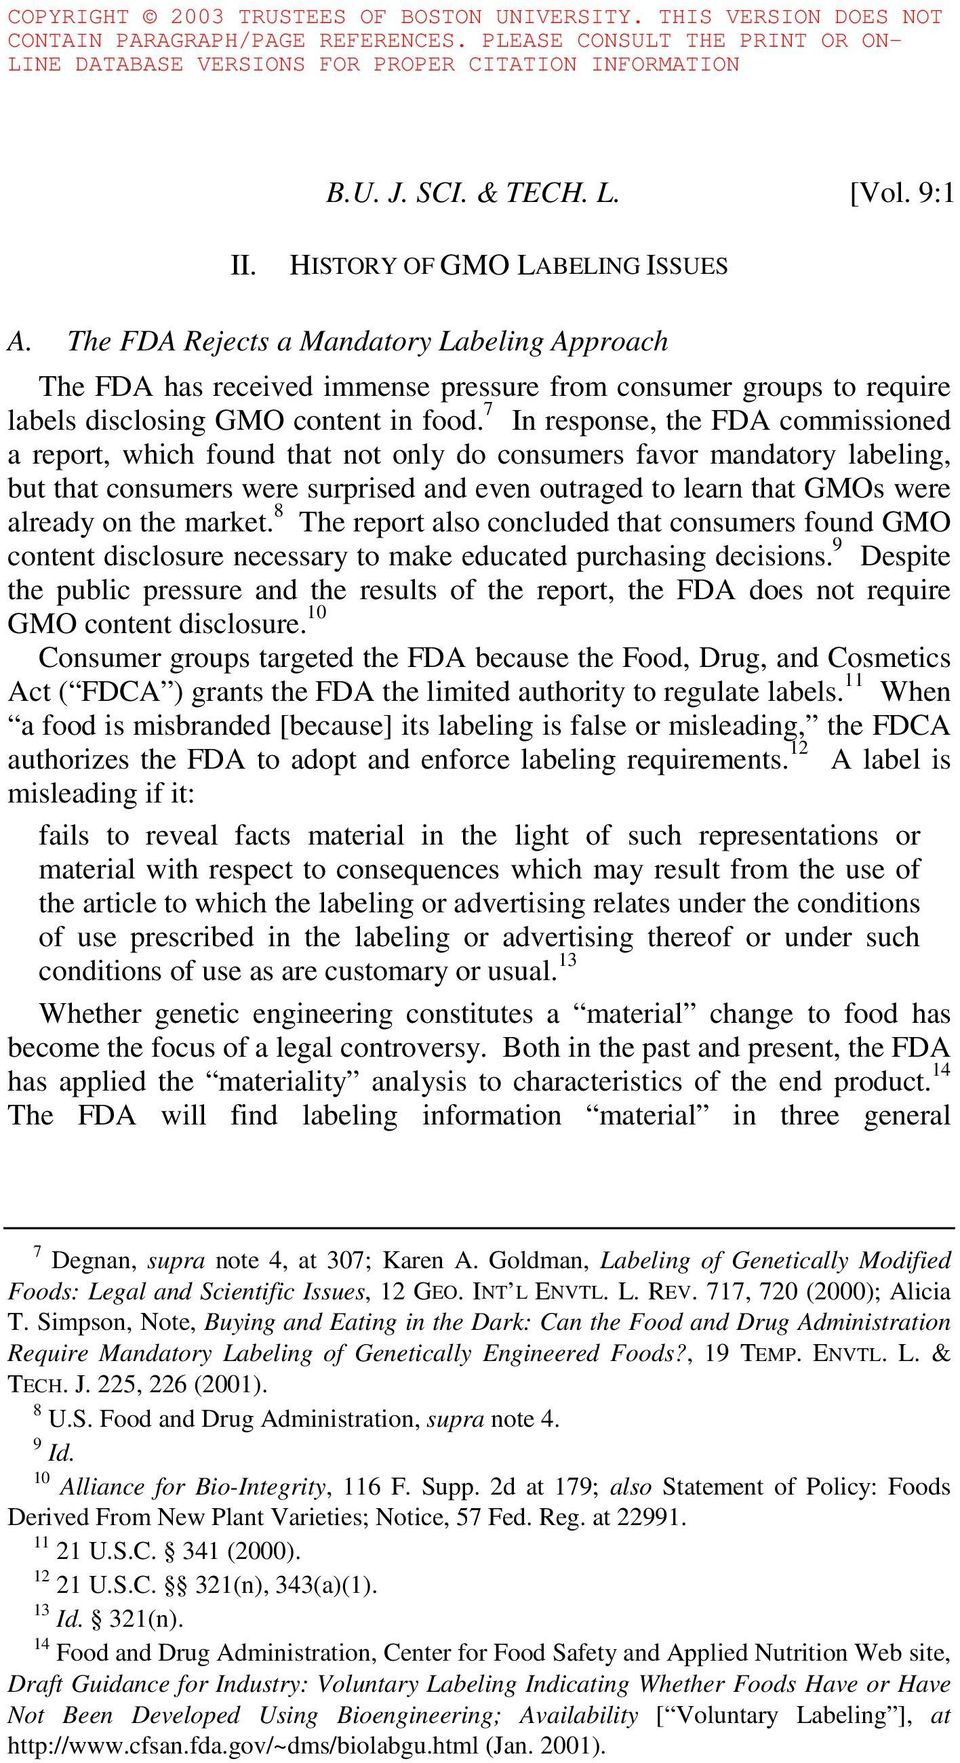 7 In response, the FDA commissioned a report, which found that not only do consumers favor mandatory labeling, but that consumers were surprised and even outraged to learn that GMOs were already on